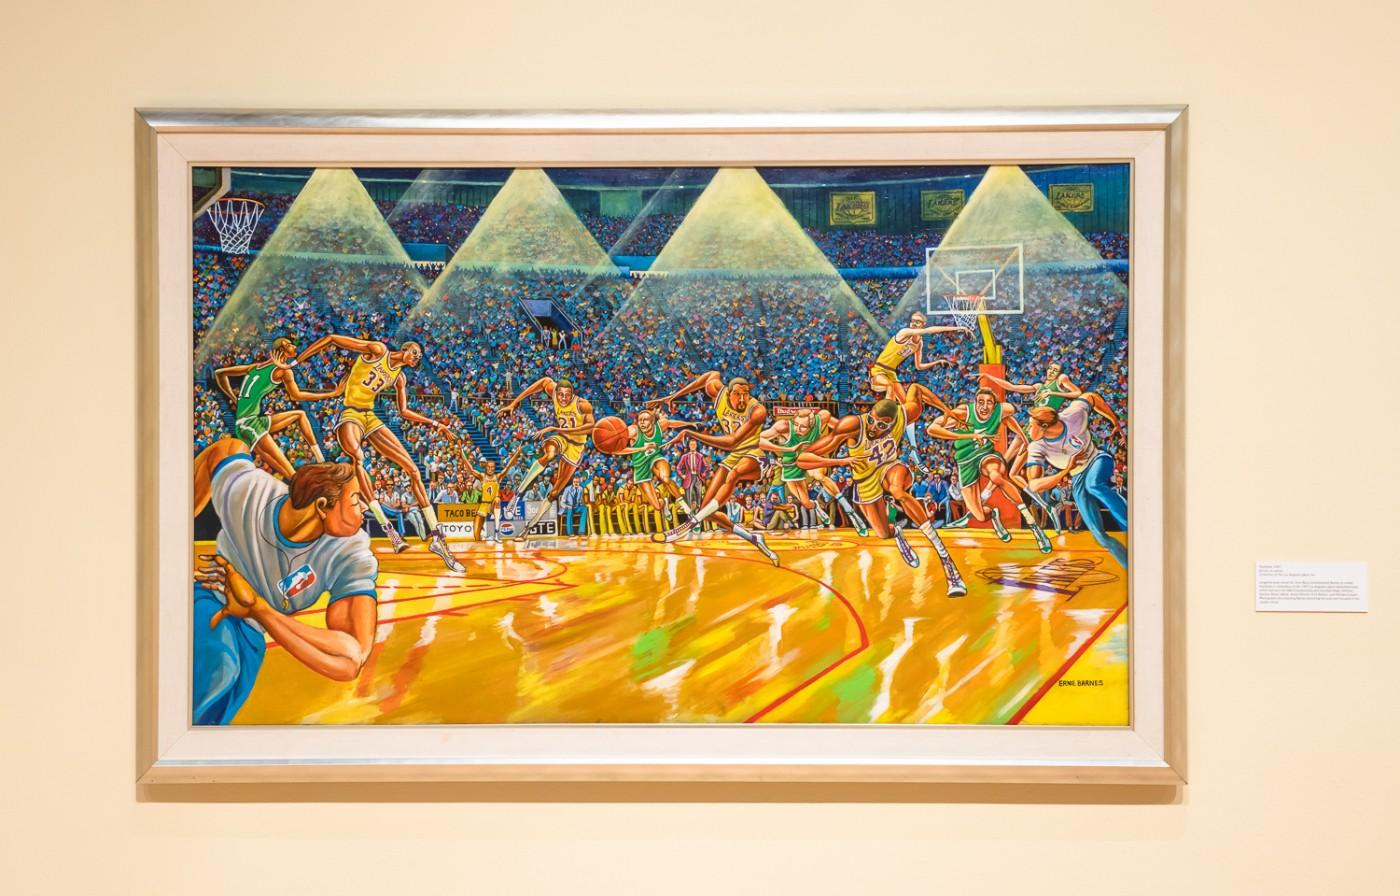 Ernie Barnes, Fastbreak, 1987. Acrylic on canvas. Collection of The Los Angeles Lakers, Inc.